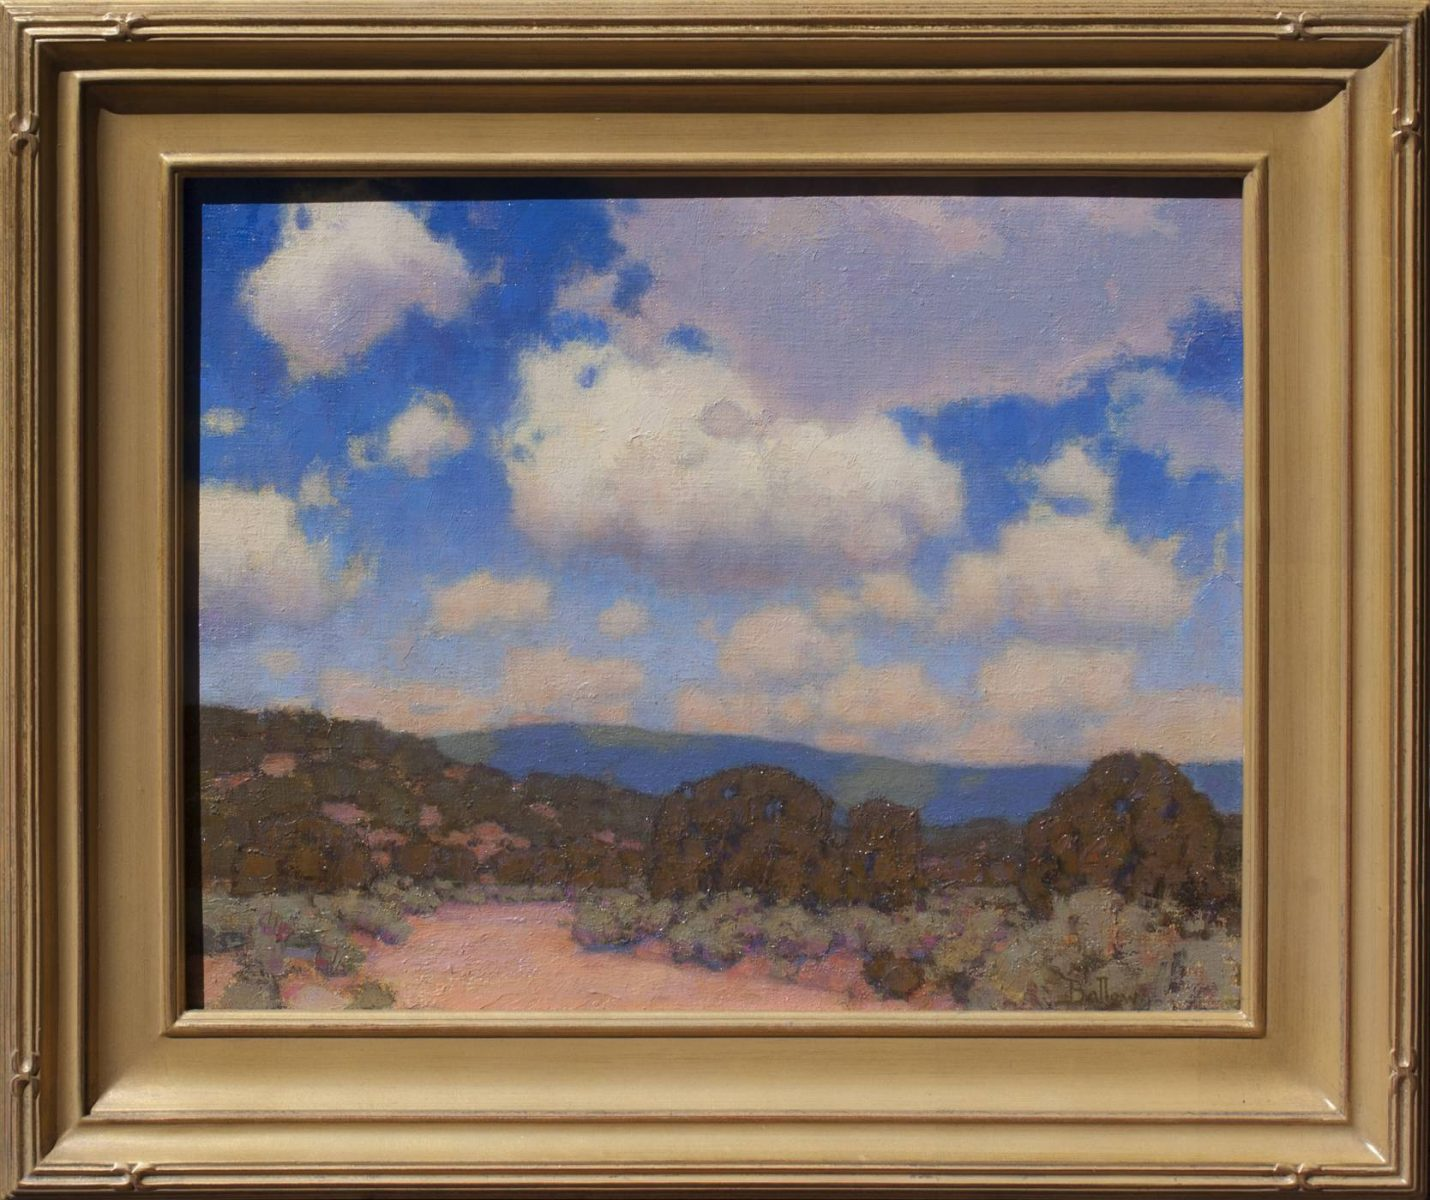 Summer Cumulus painting by David Ballew